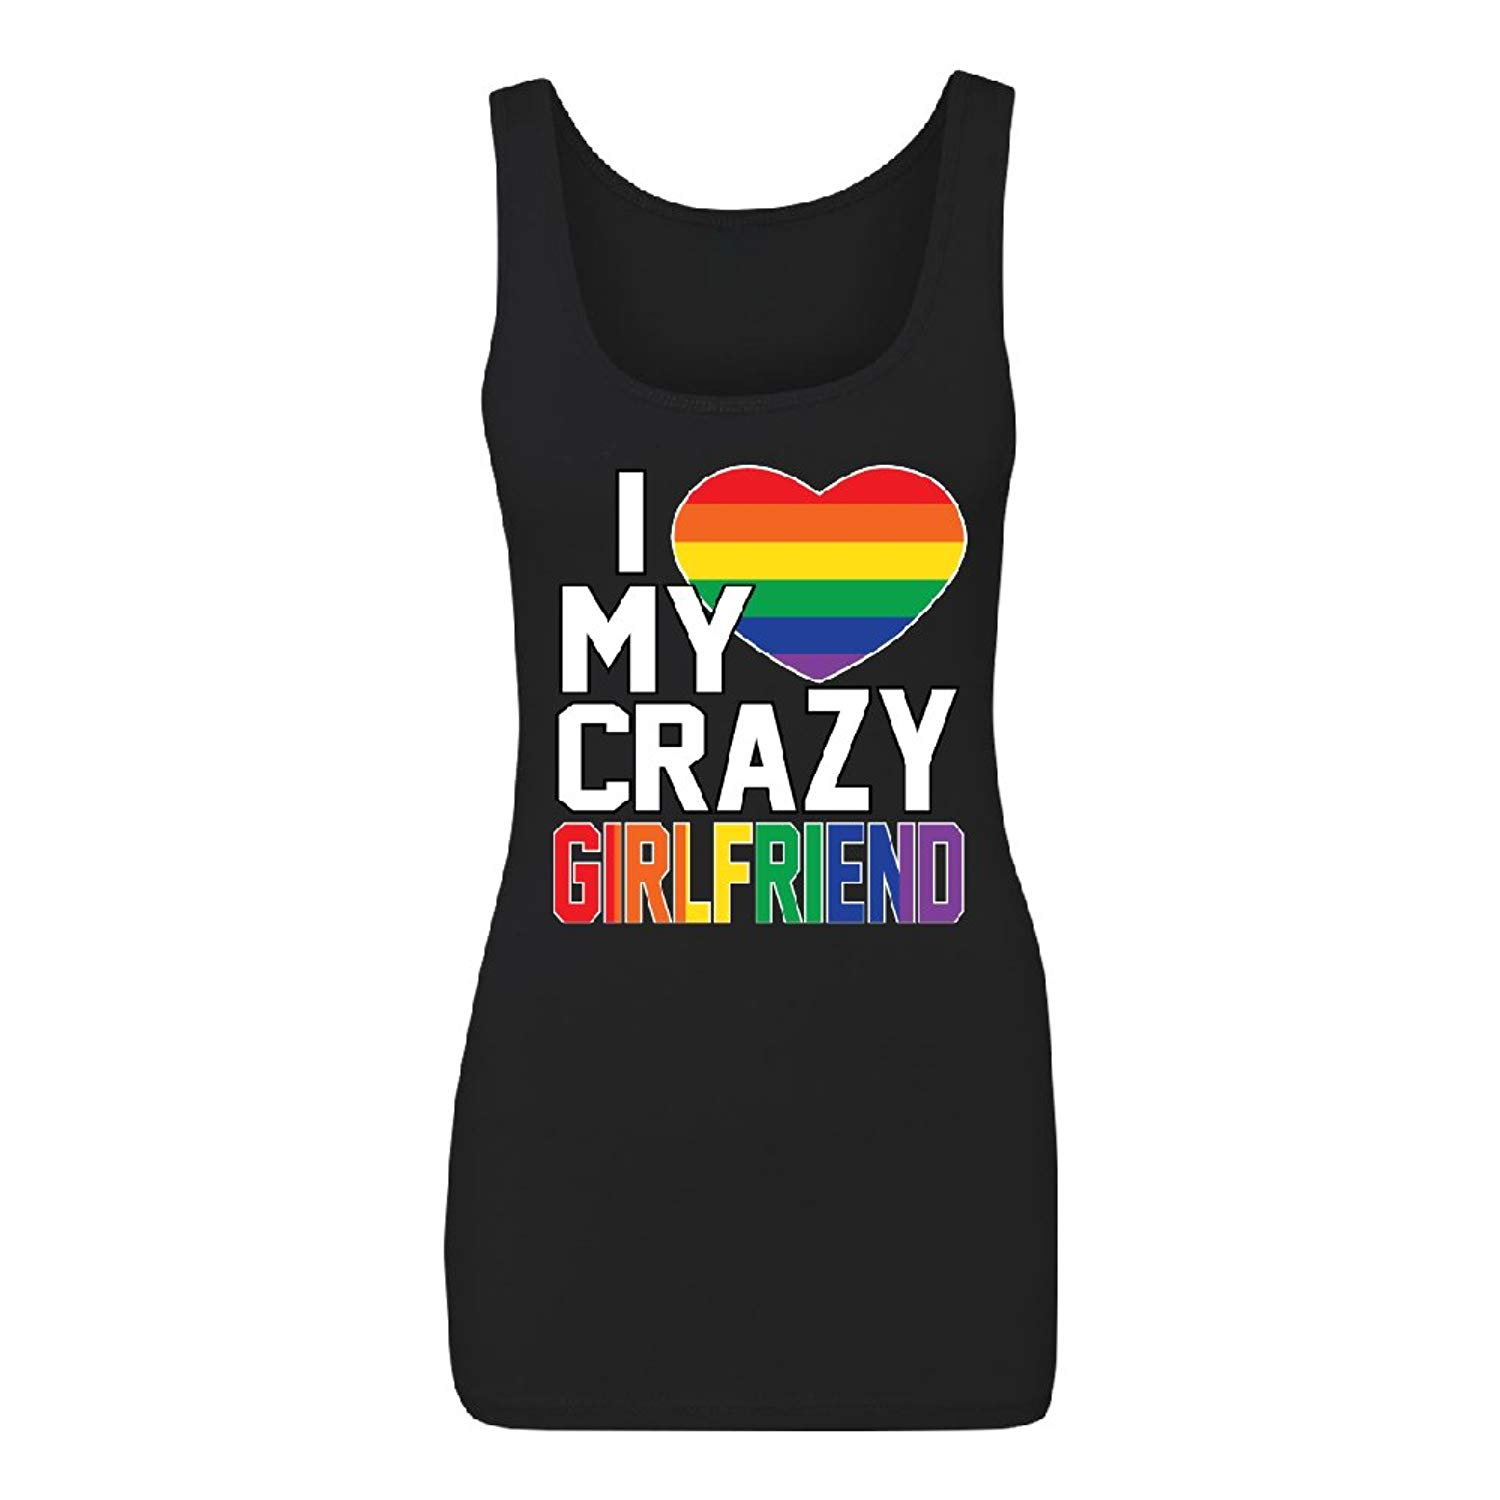 Buy I Love My Crazy Girlfriend Womens Tank Top Rainbow Gay Pride